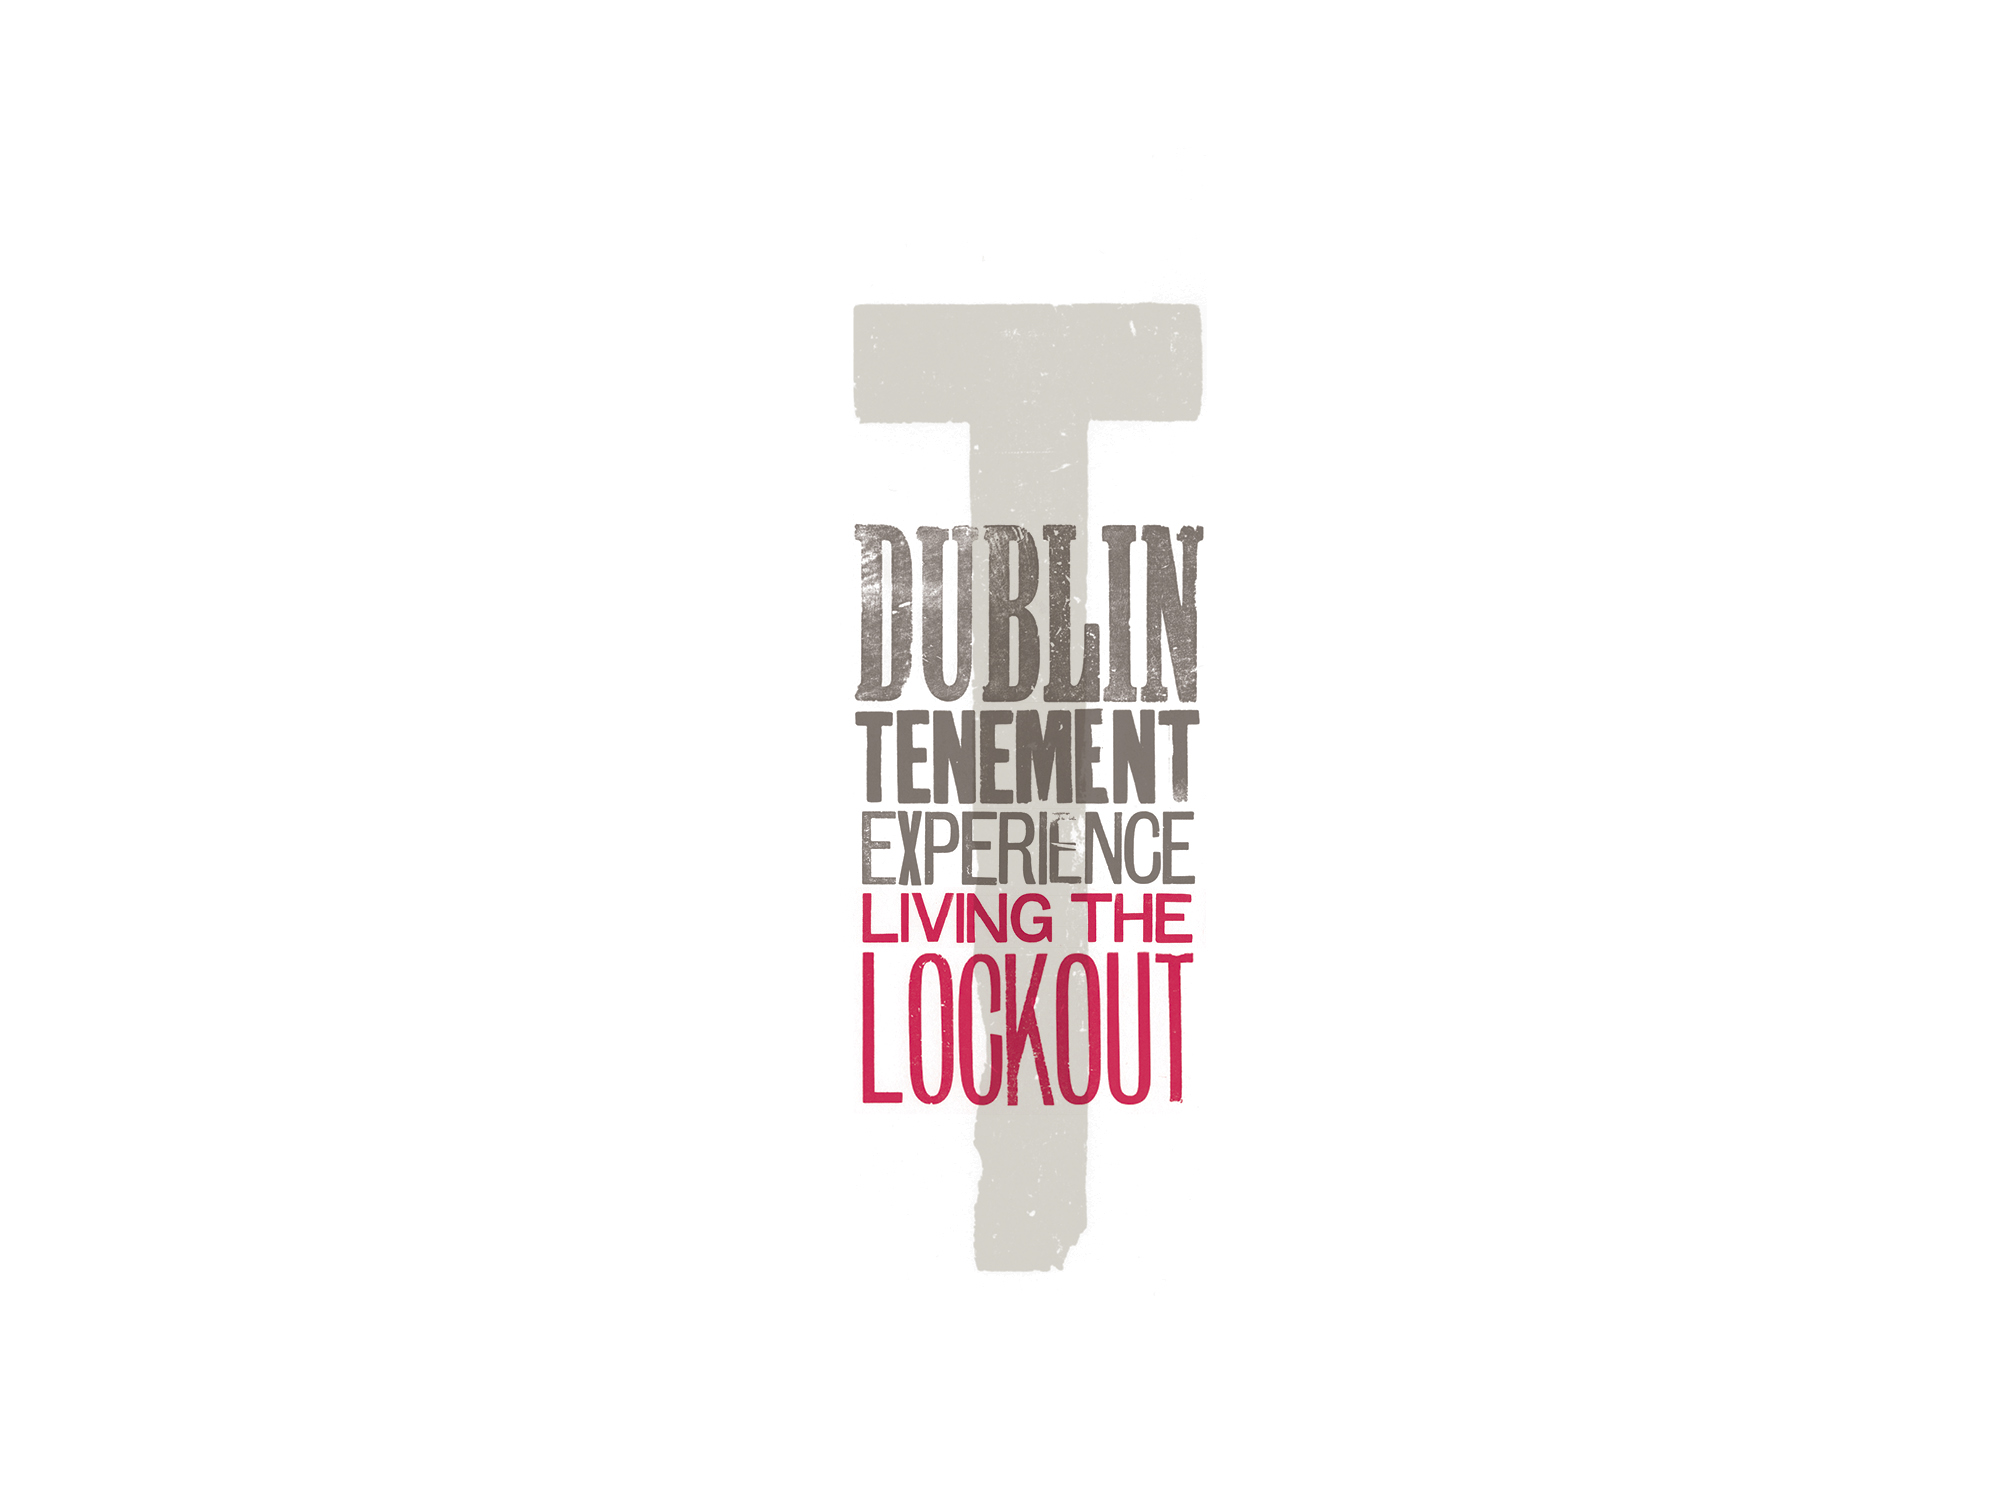 Cover image: Dublin Tenement Experience (2013)